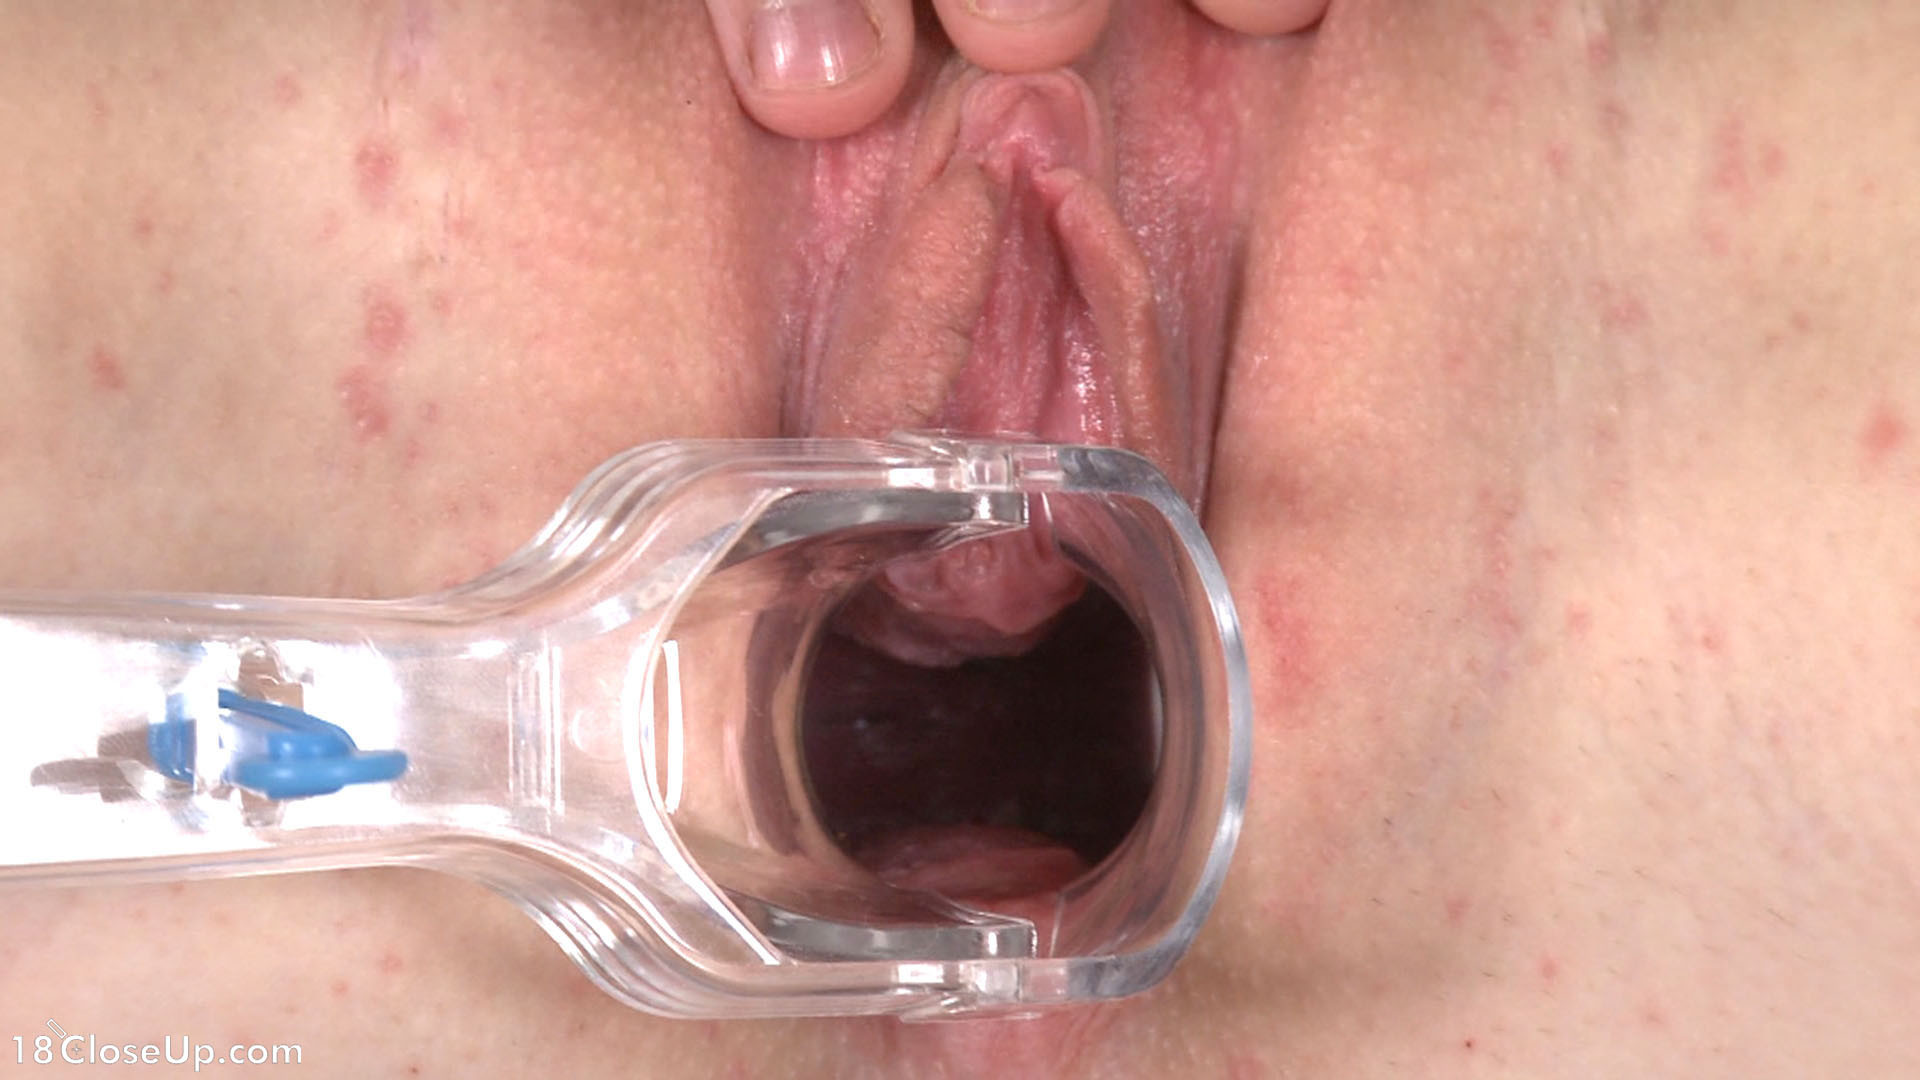 Inside pussy orgasm close up with